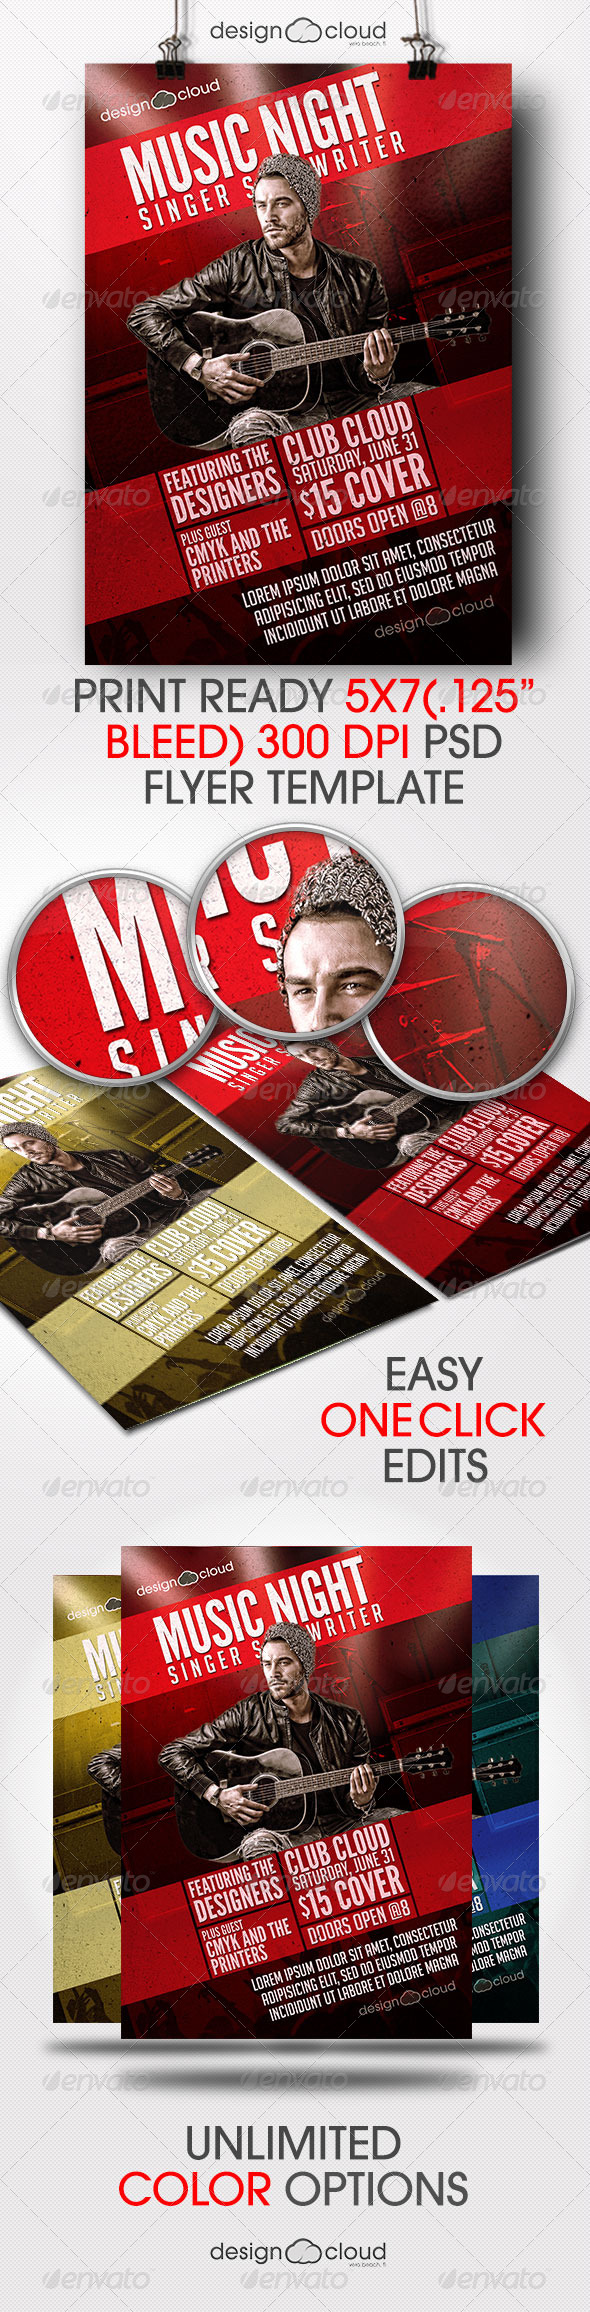 GraphicRiver Singer Songwriter Music Night Flyer Template 7681895